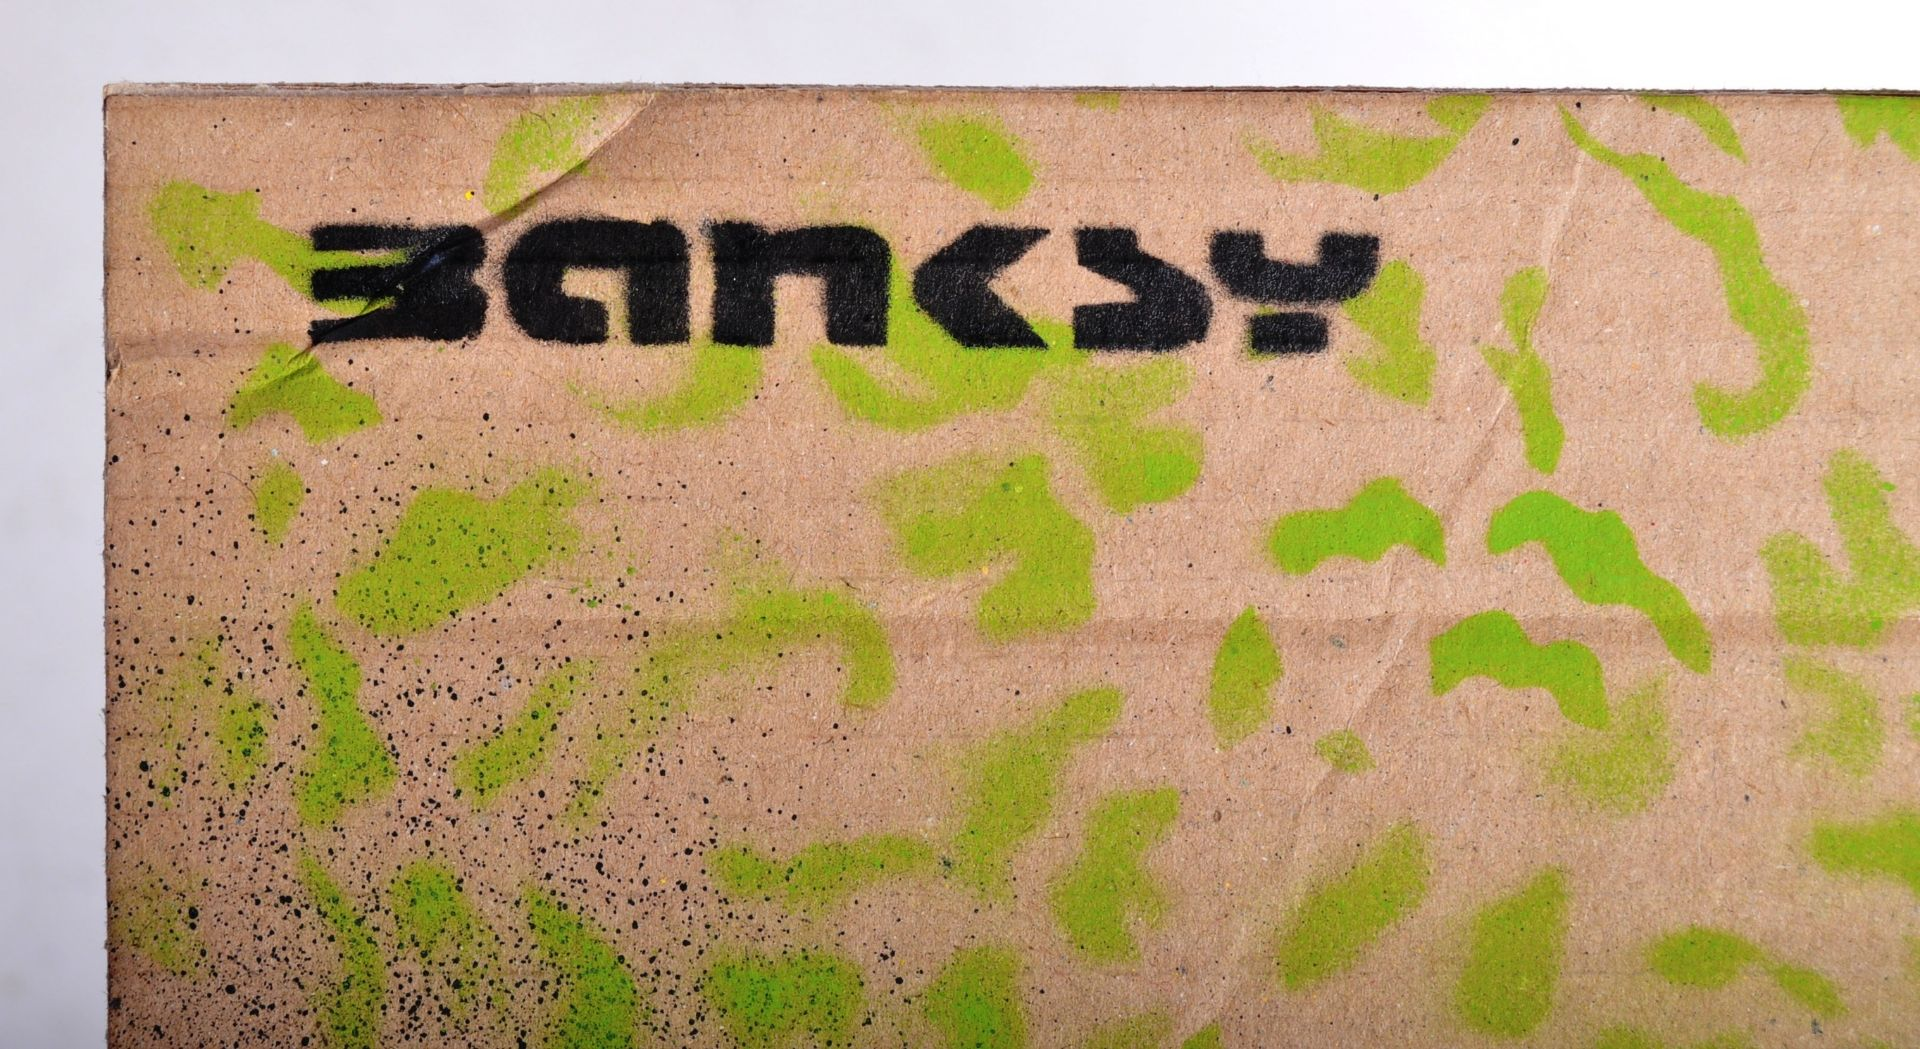 BANKSY - DISMALAND 2015 - ABE LINCOLN - Image 3 of 4